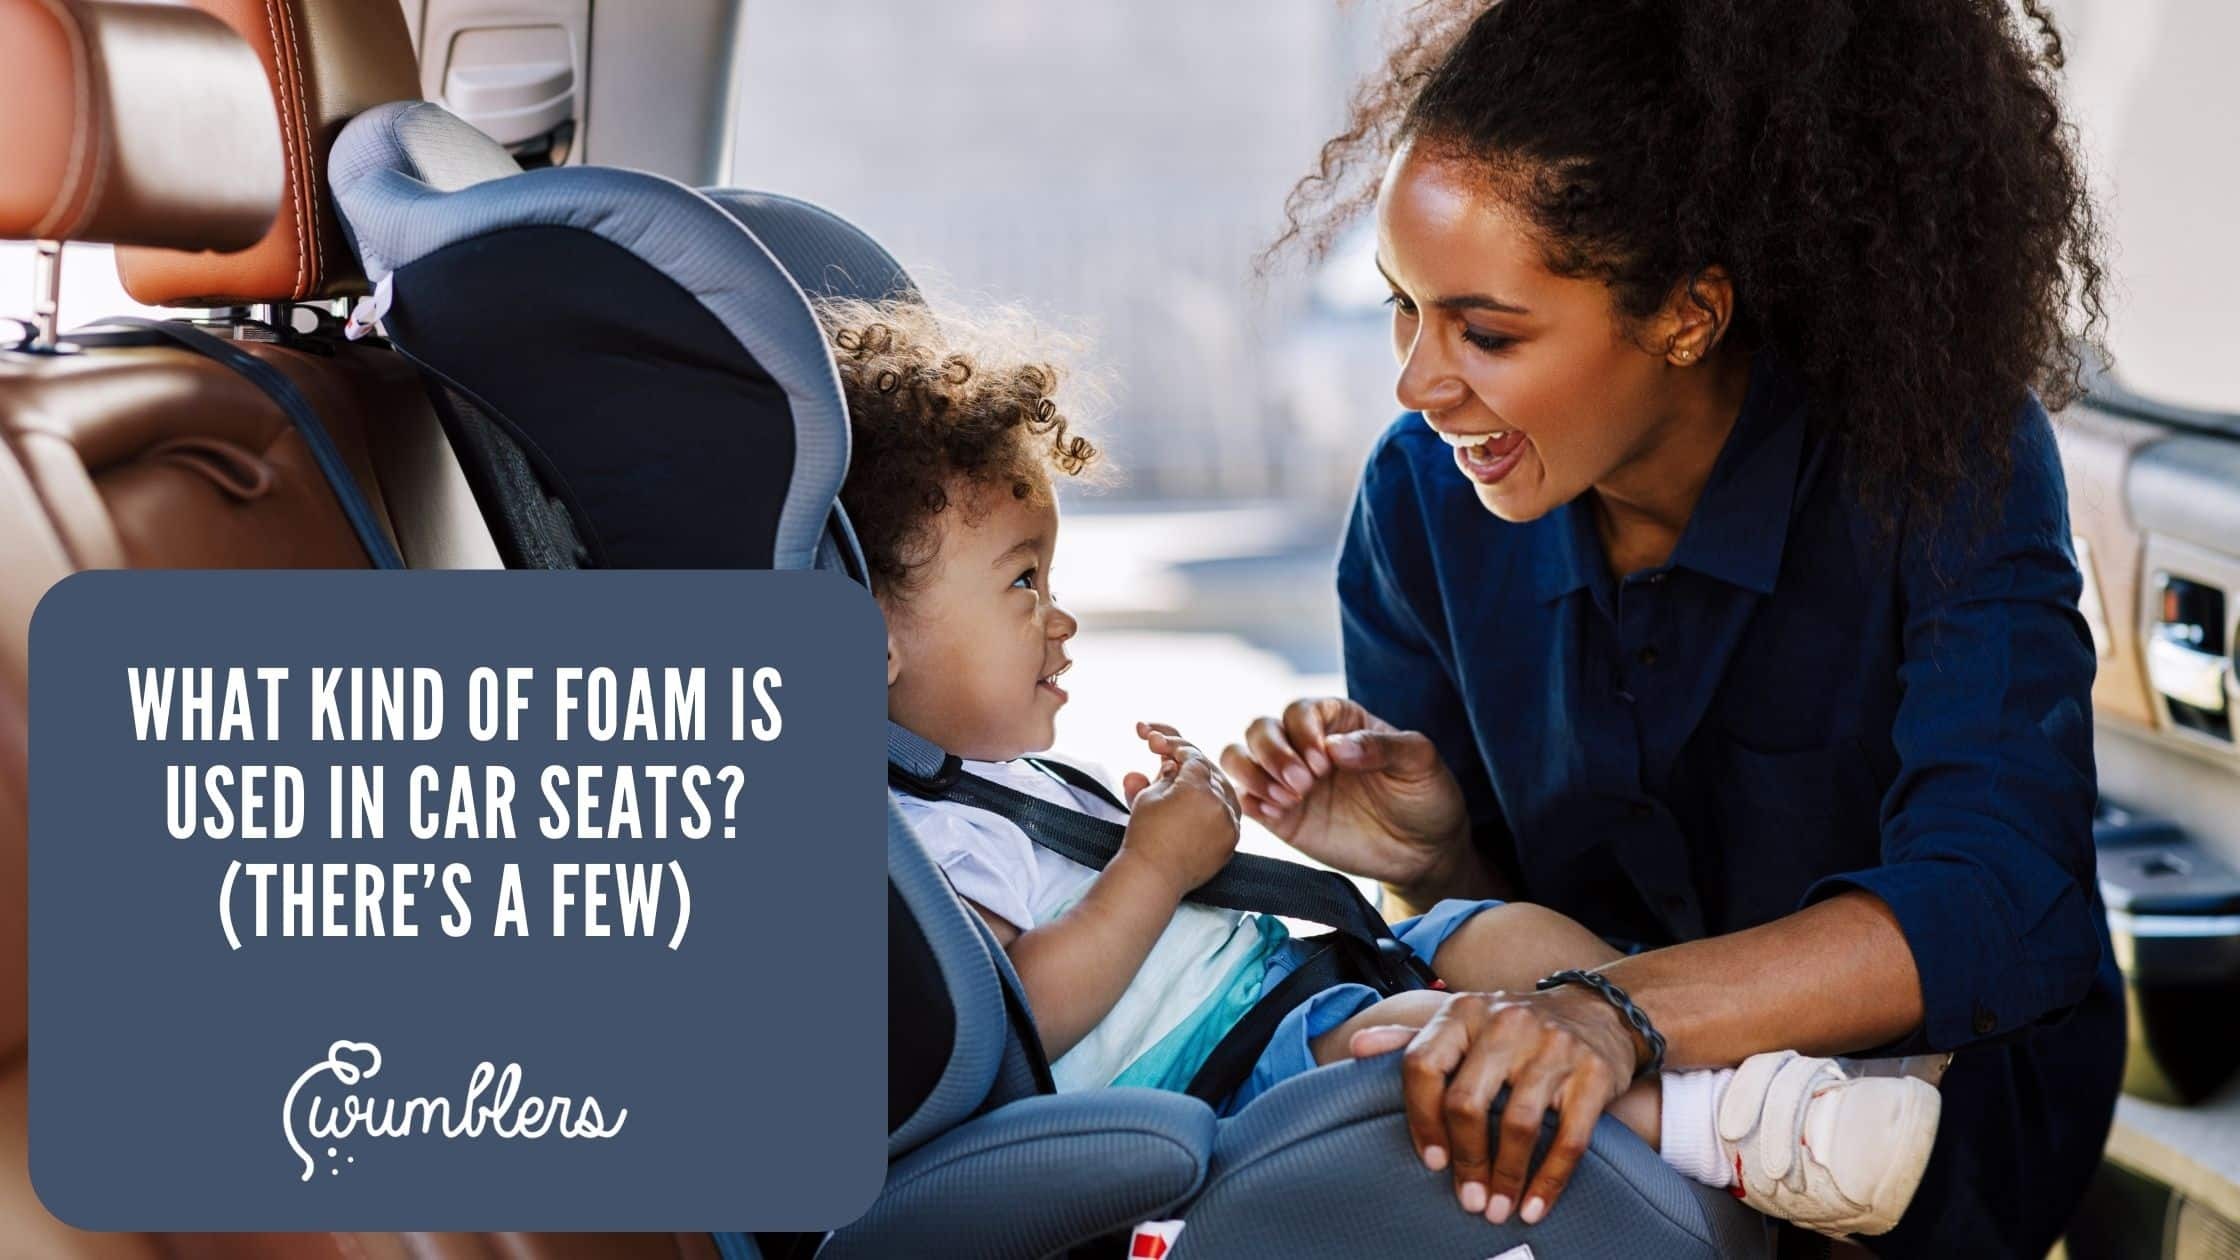 What kind of foam is used in car seats (there's a few)